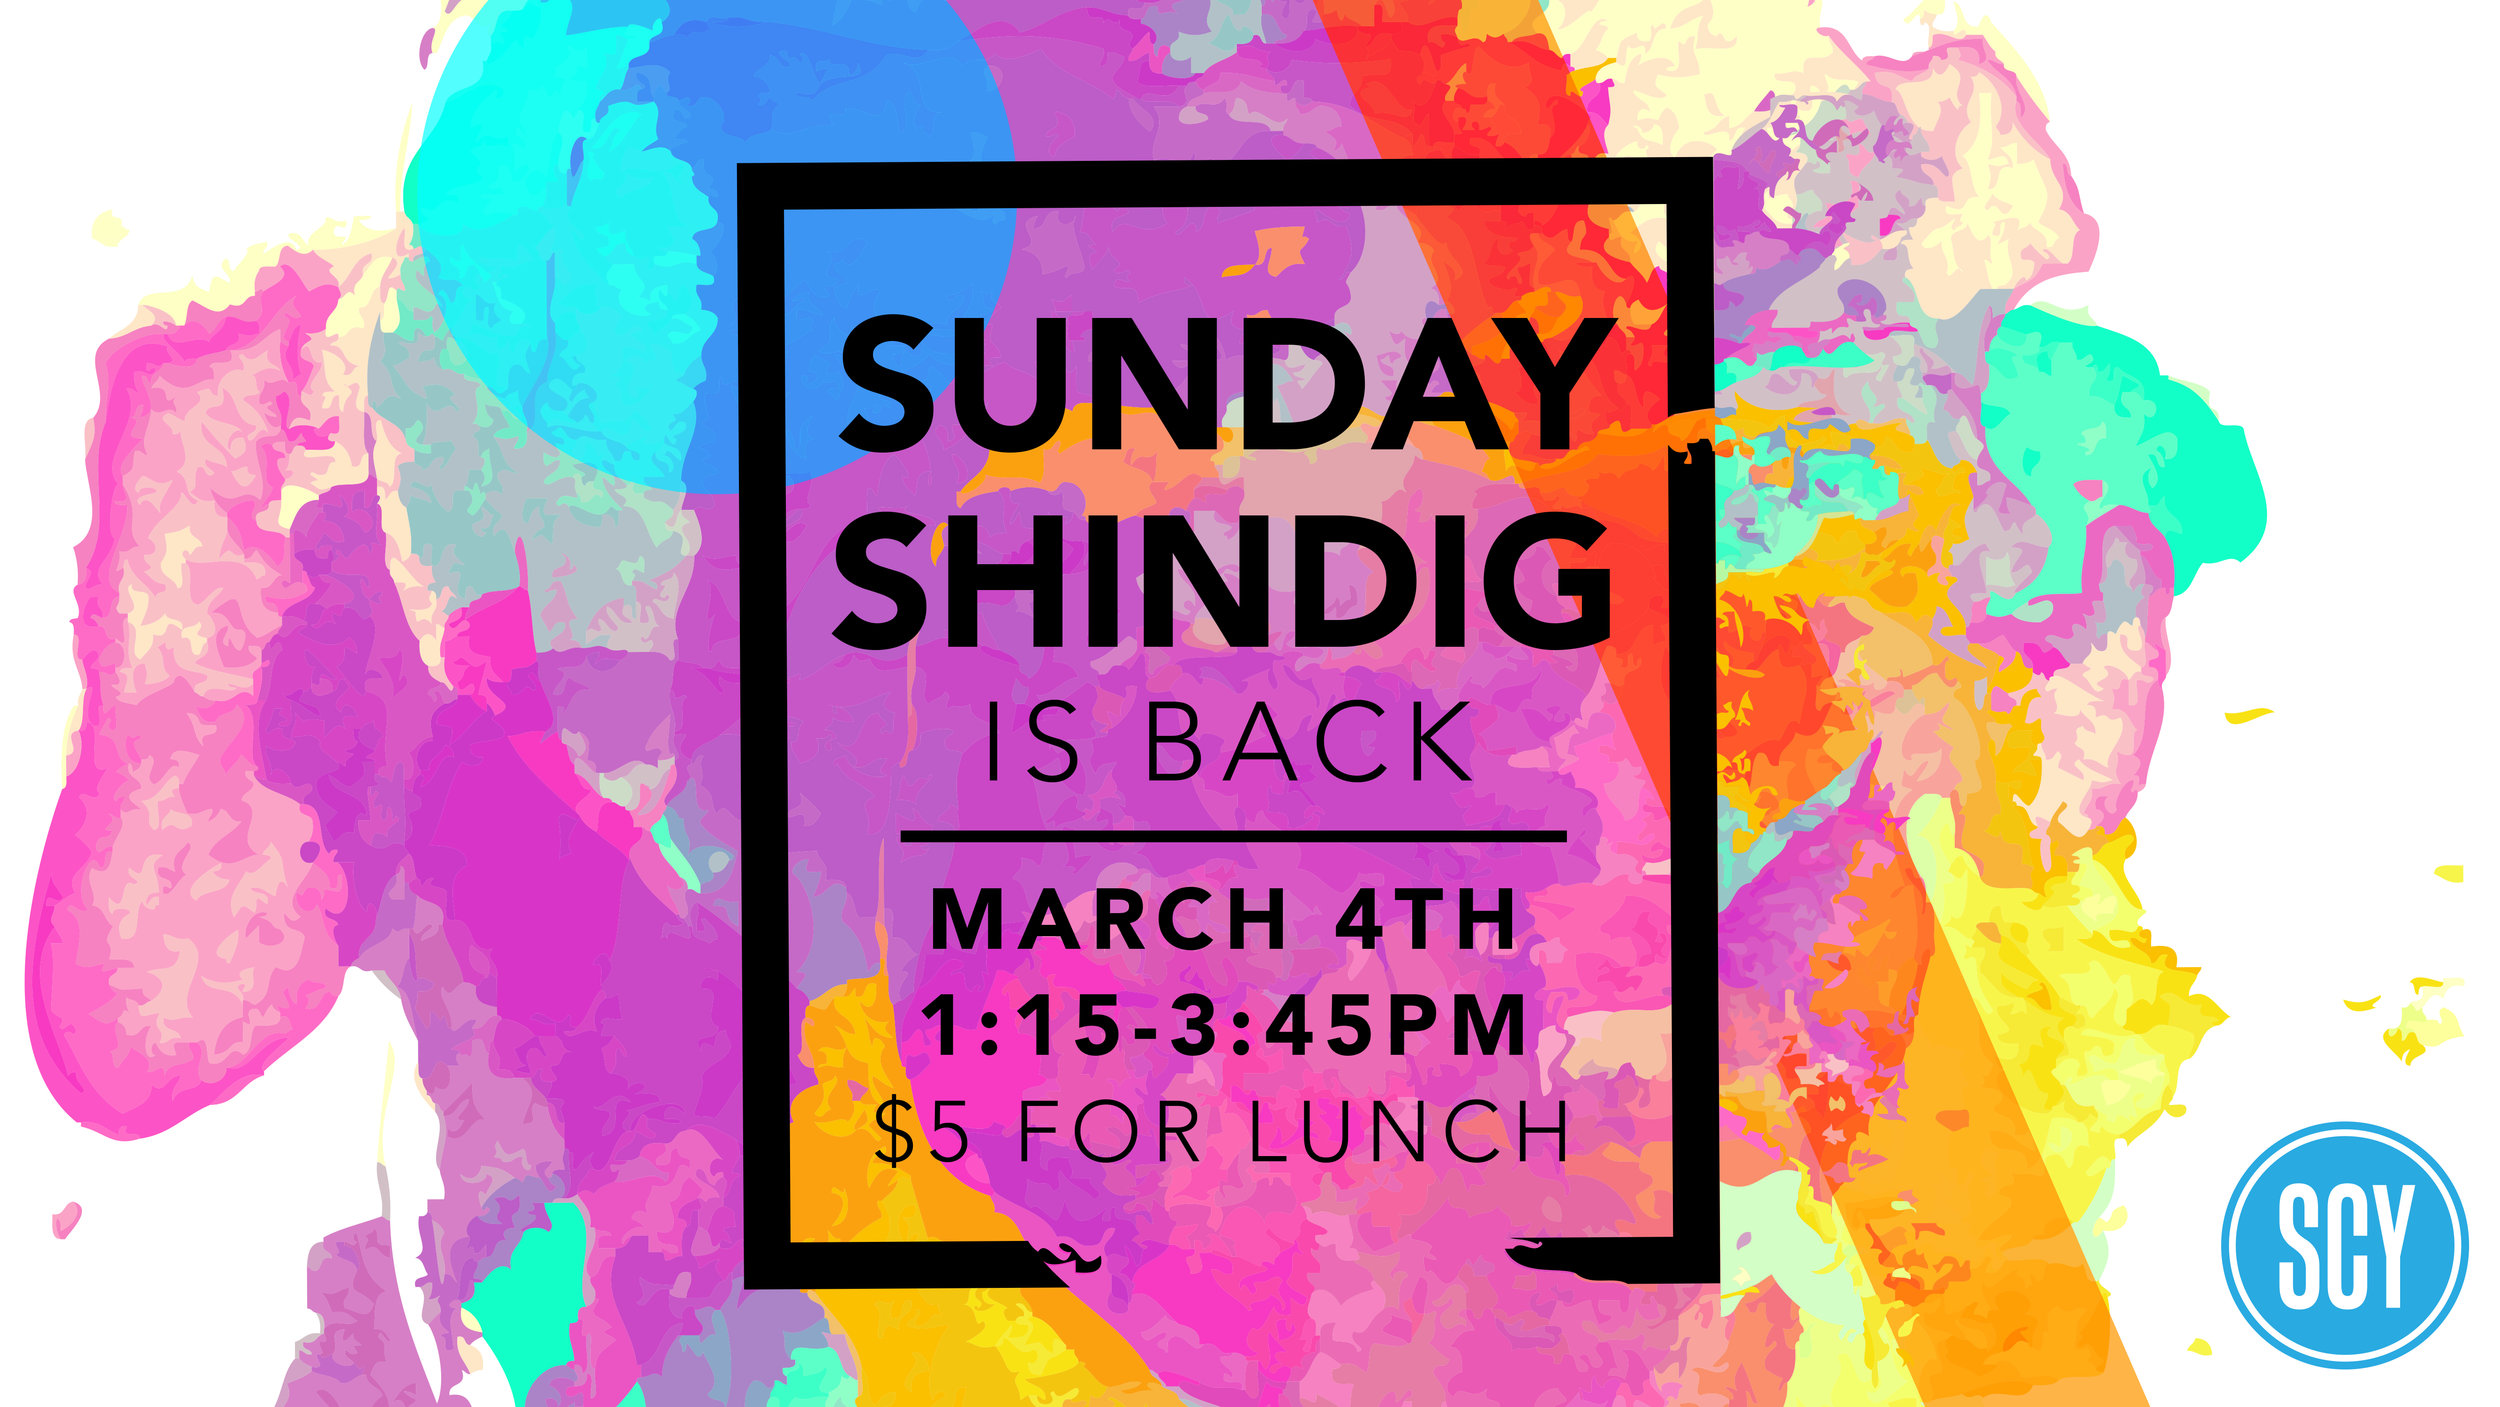 Sunday Shindig - March 4th.jpg